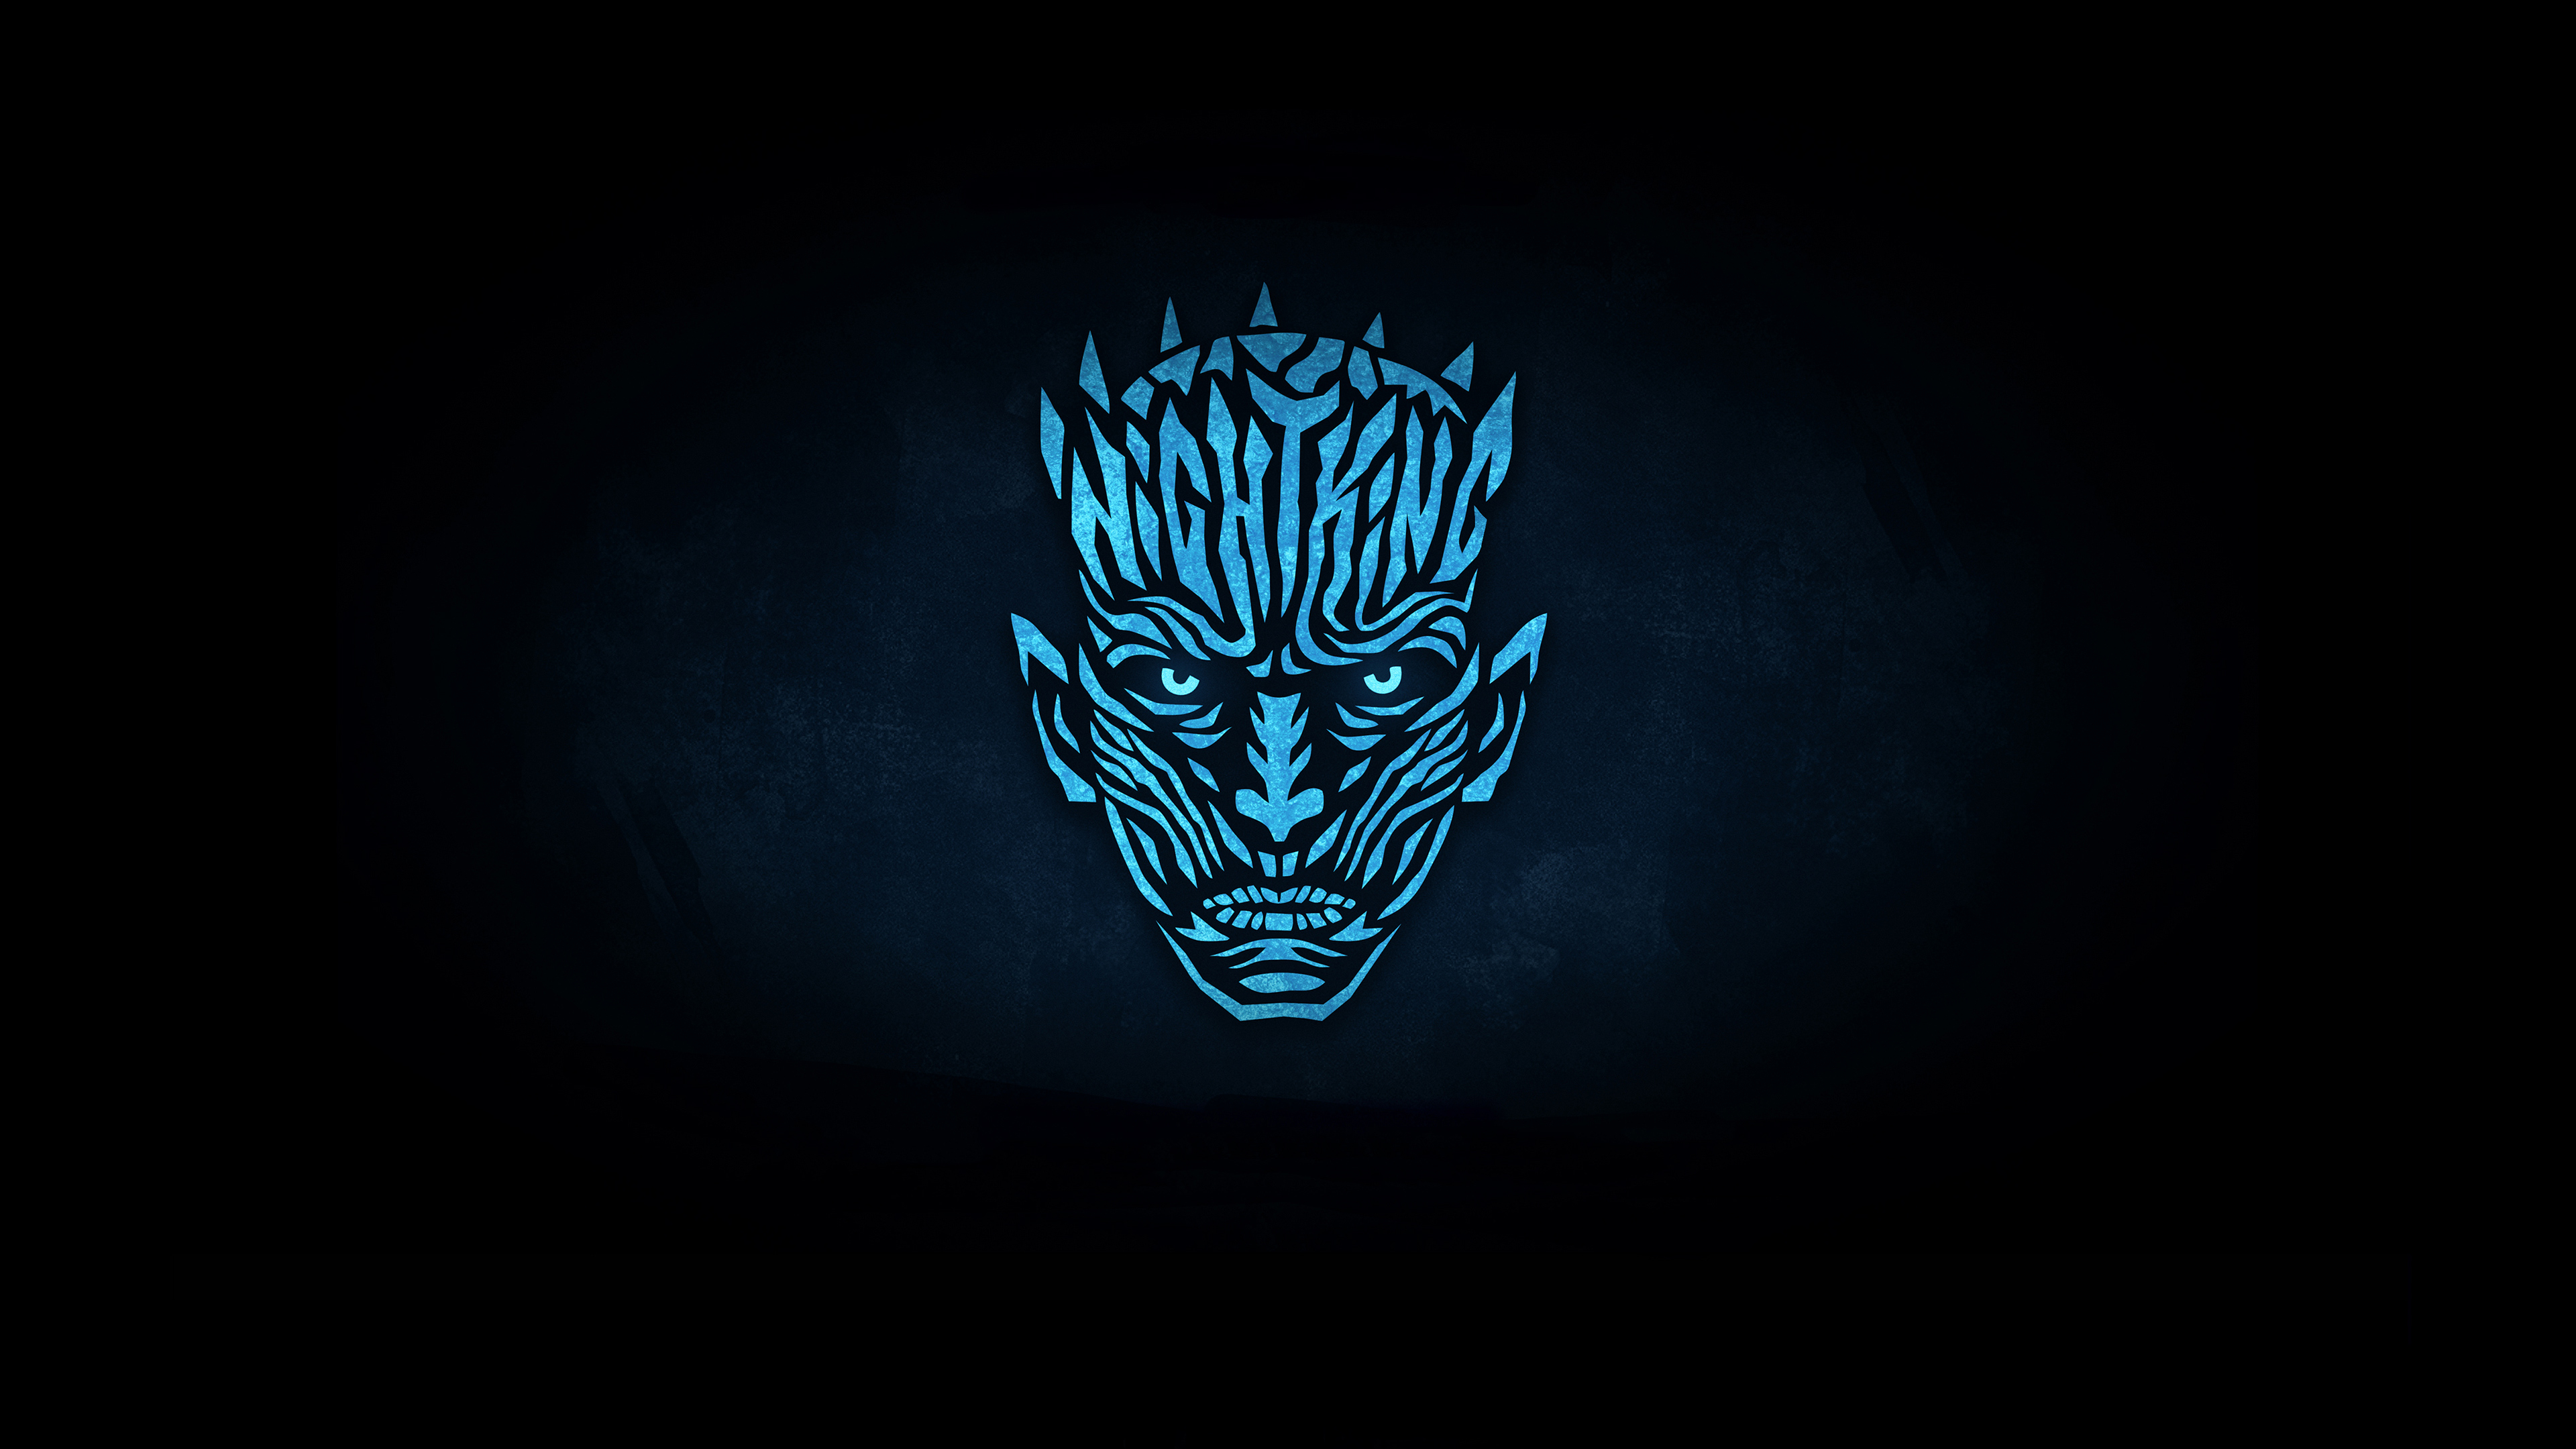 Game Of Thrones Minimalist Wallpaper: Night King Minimalist From Game Of Thrones Wallpaper, HD